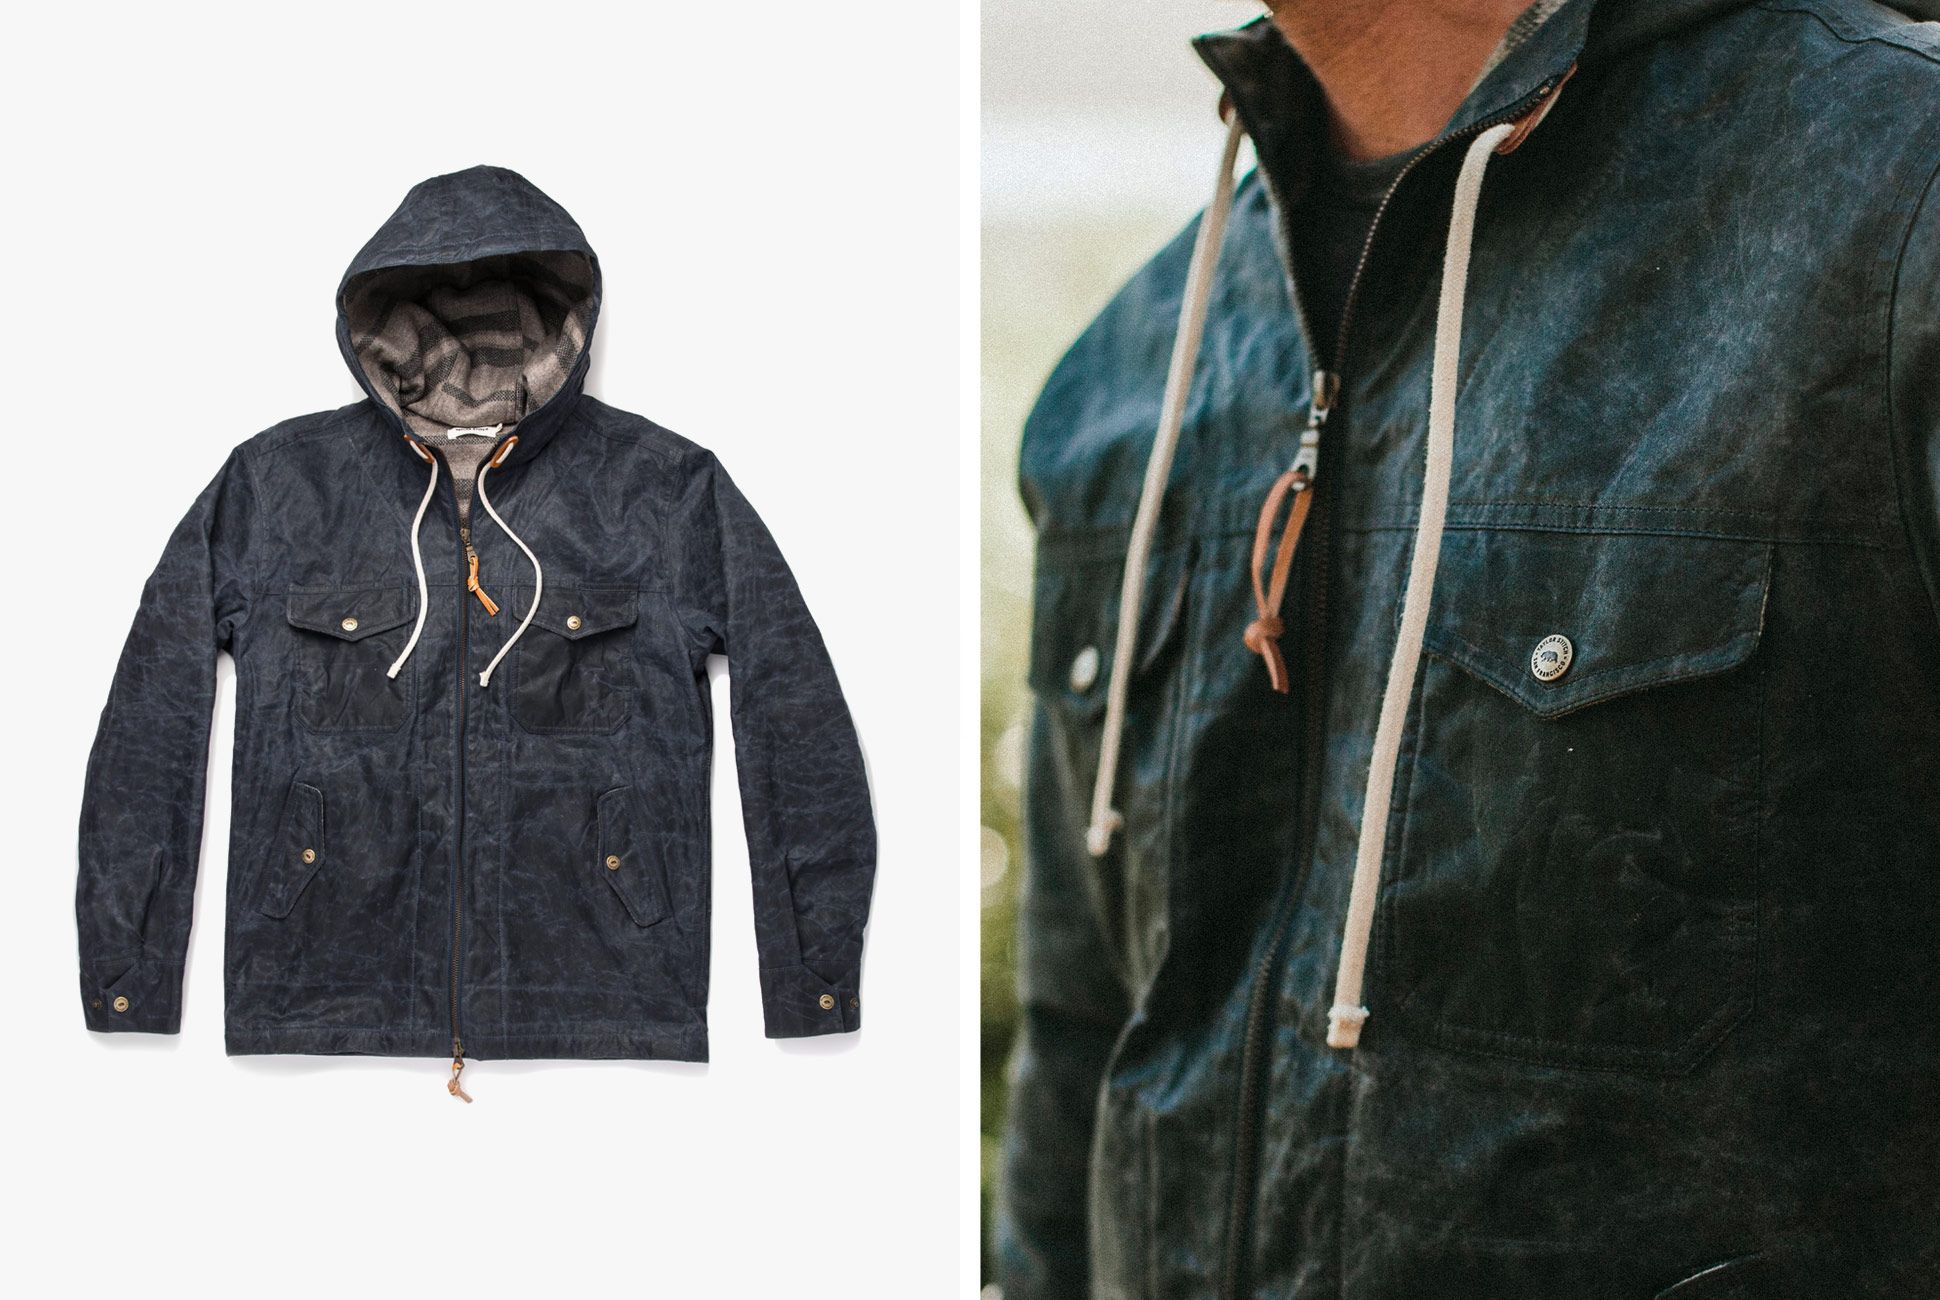 594a43d91 This Waxed Canvas Jacket Will Stand Up to the Worst Spring Weather ...